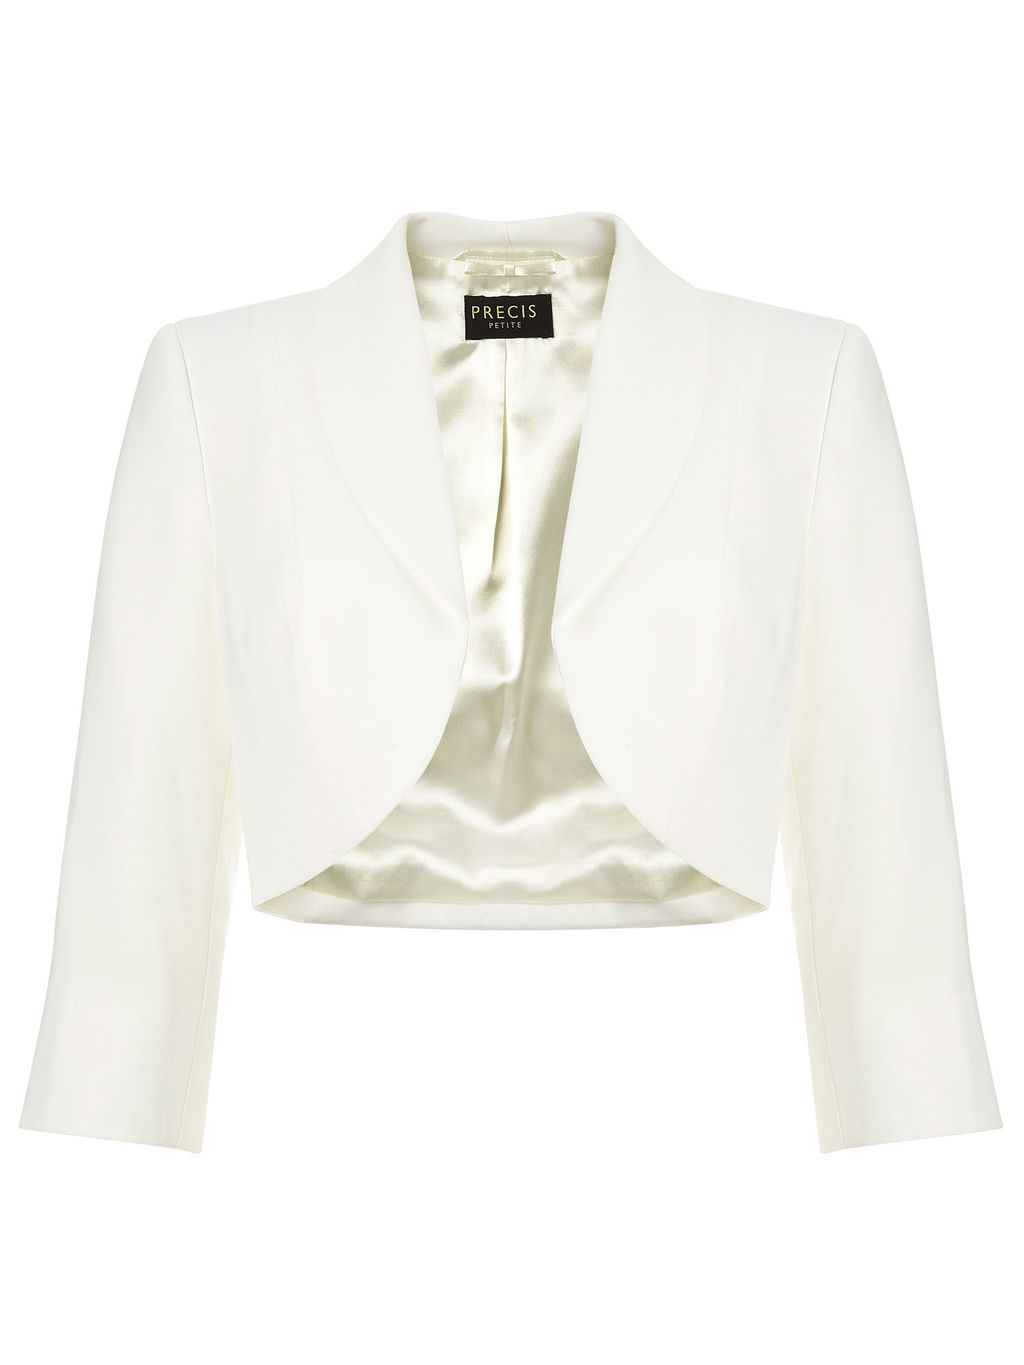 3/4 Sleeve Ivory Bolero - pattern: plain; style: bolero/shrug; collar: round collar/collarless; predominant colour: ivory/cream; occasions: evening, occasion; fit: tailored/fitted; fibres: polyester/polyamide - 100%; sleeve length: 3/4 length; sleeve style: standard; texture group: crepes; collar break: low/open; pattern type: fabric; length: cropped; season: s/s 2016; wardrobe: event